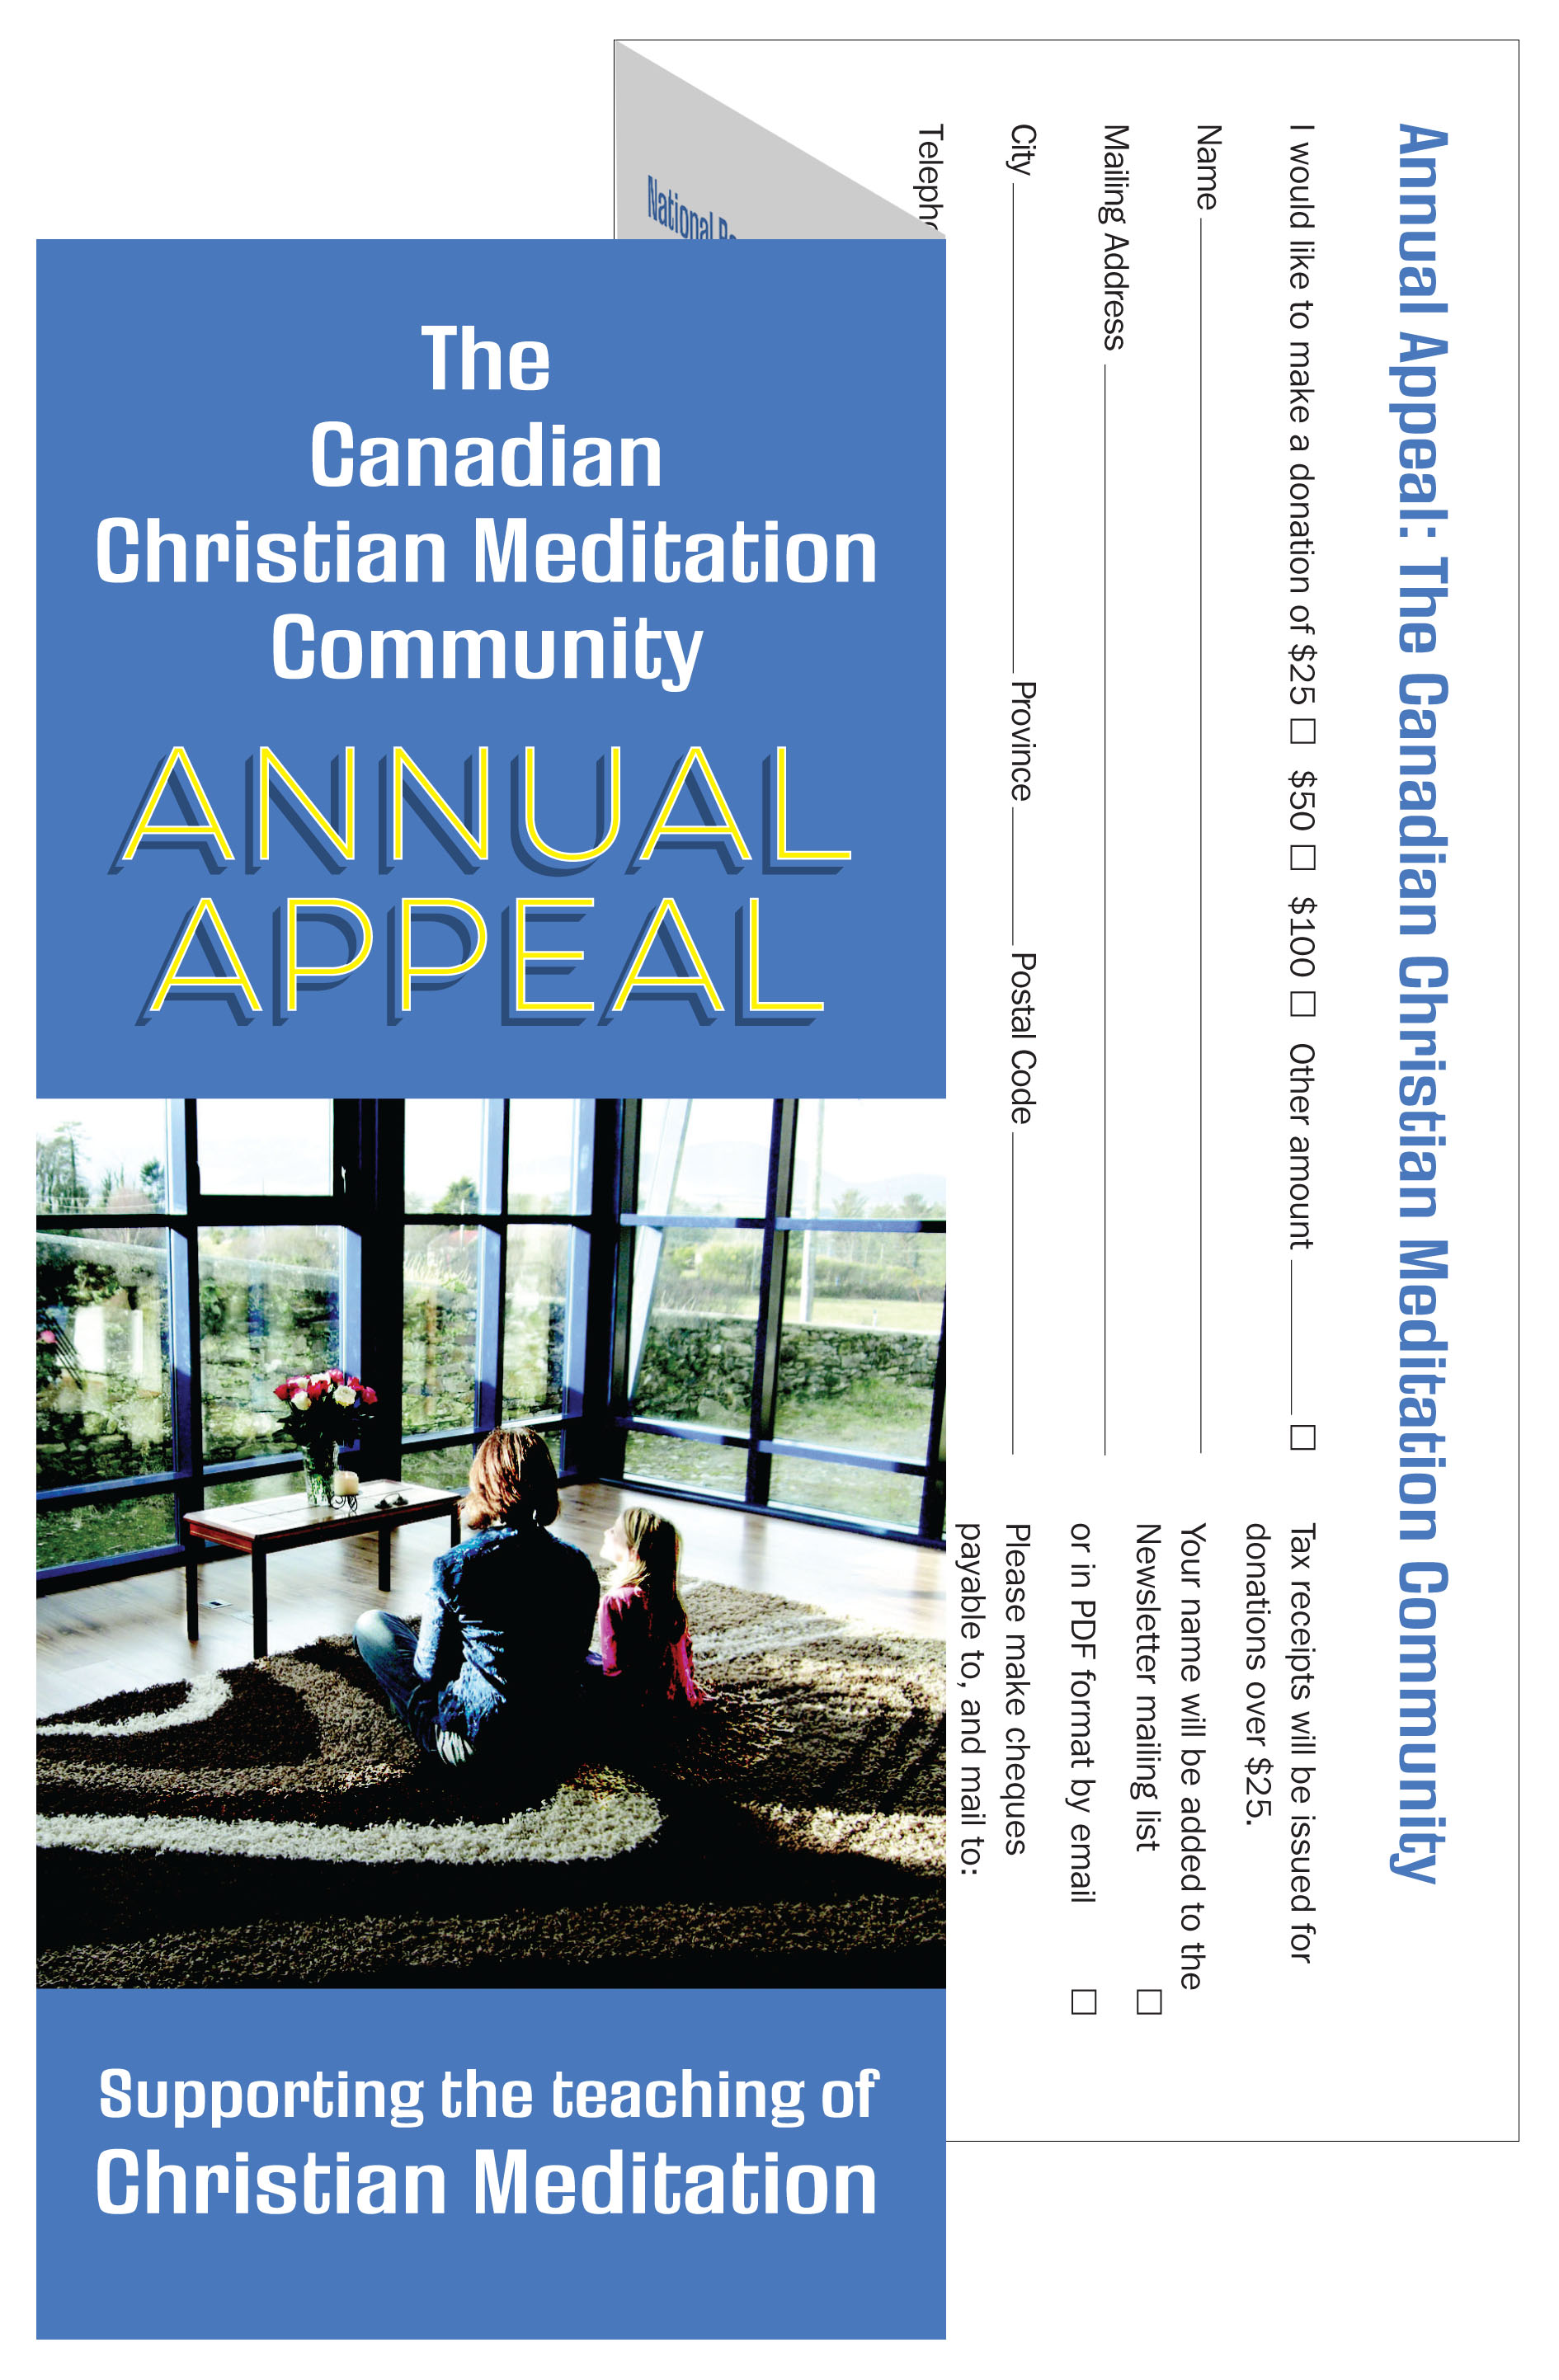 Brochure, Annual Appeal